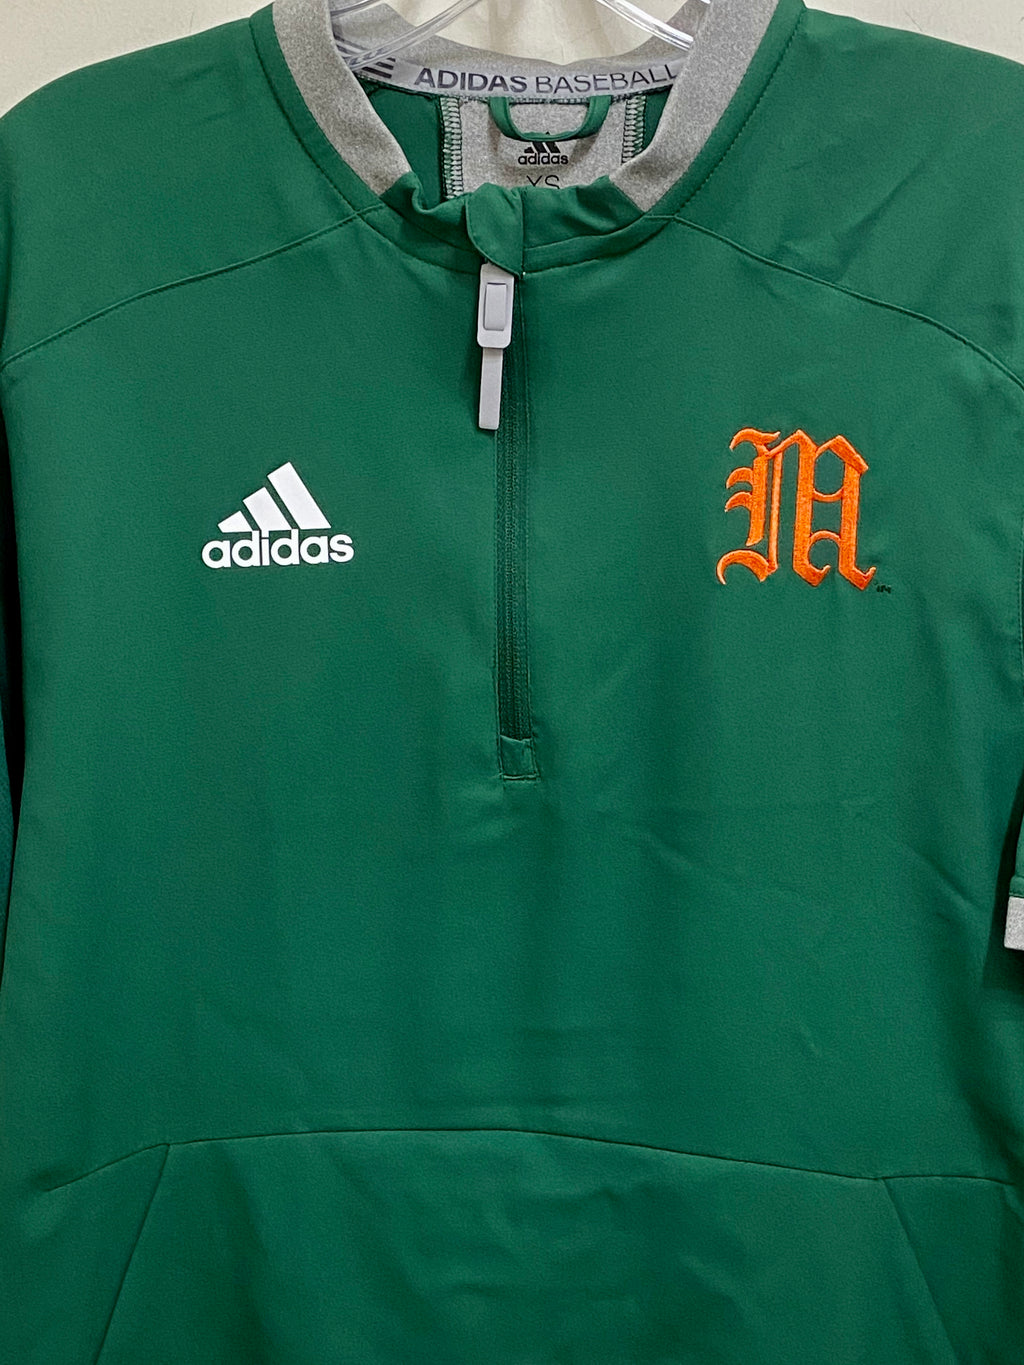 Miami Hurricanes 2019 adidas Old English M 1/4 Zip Pullover